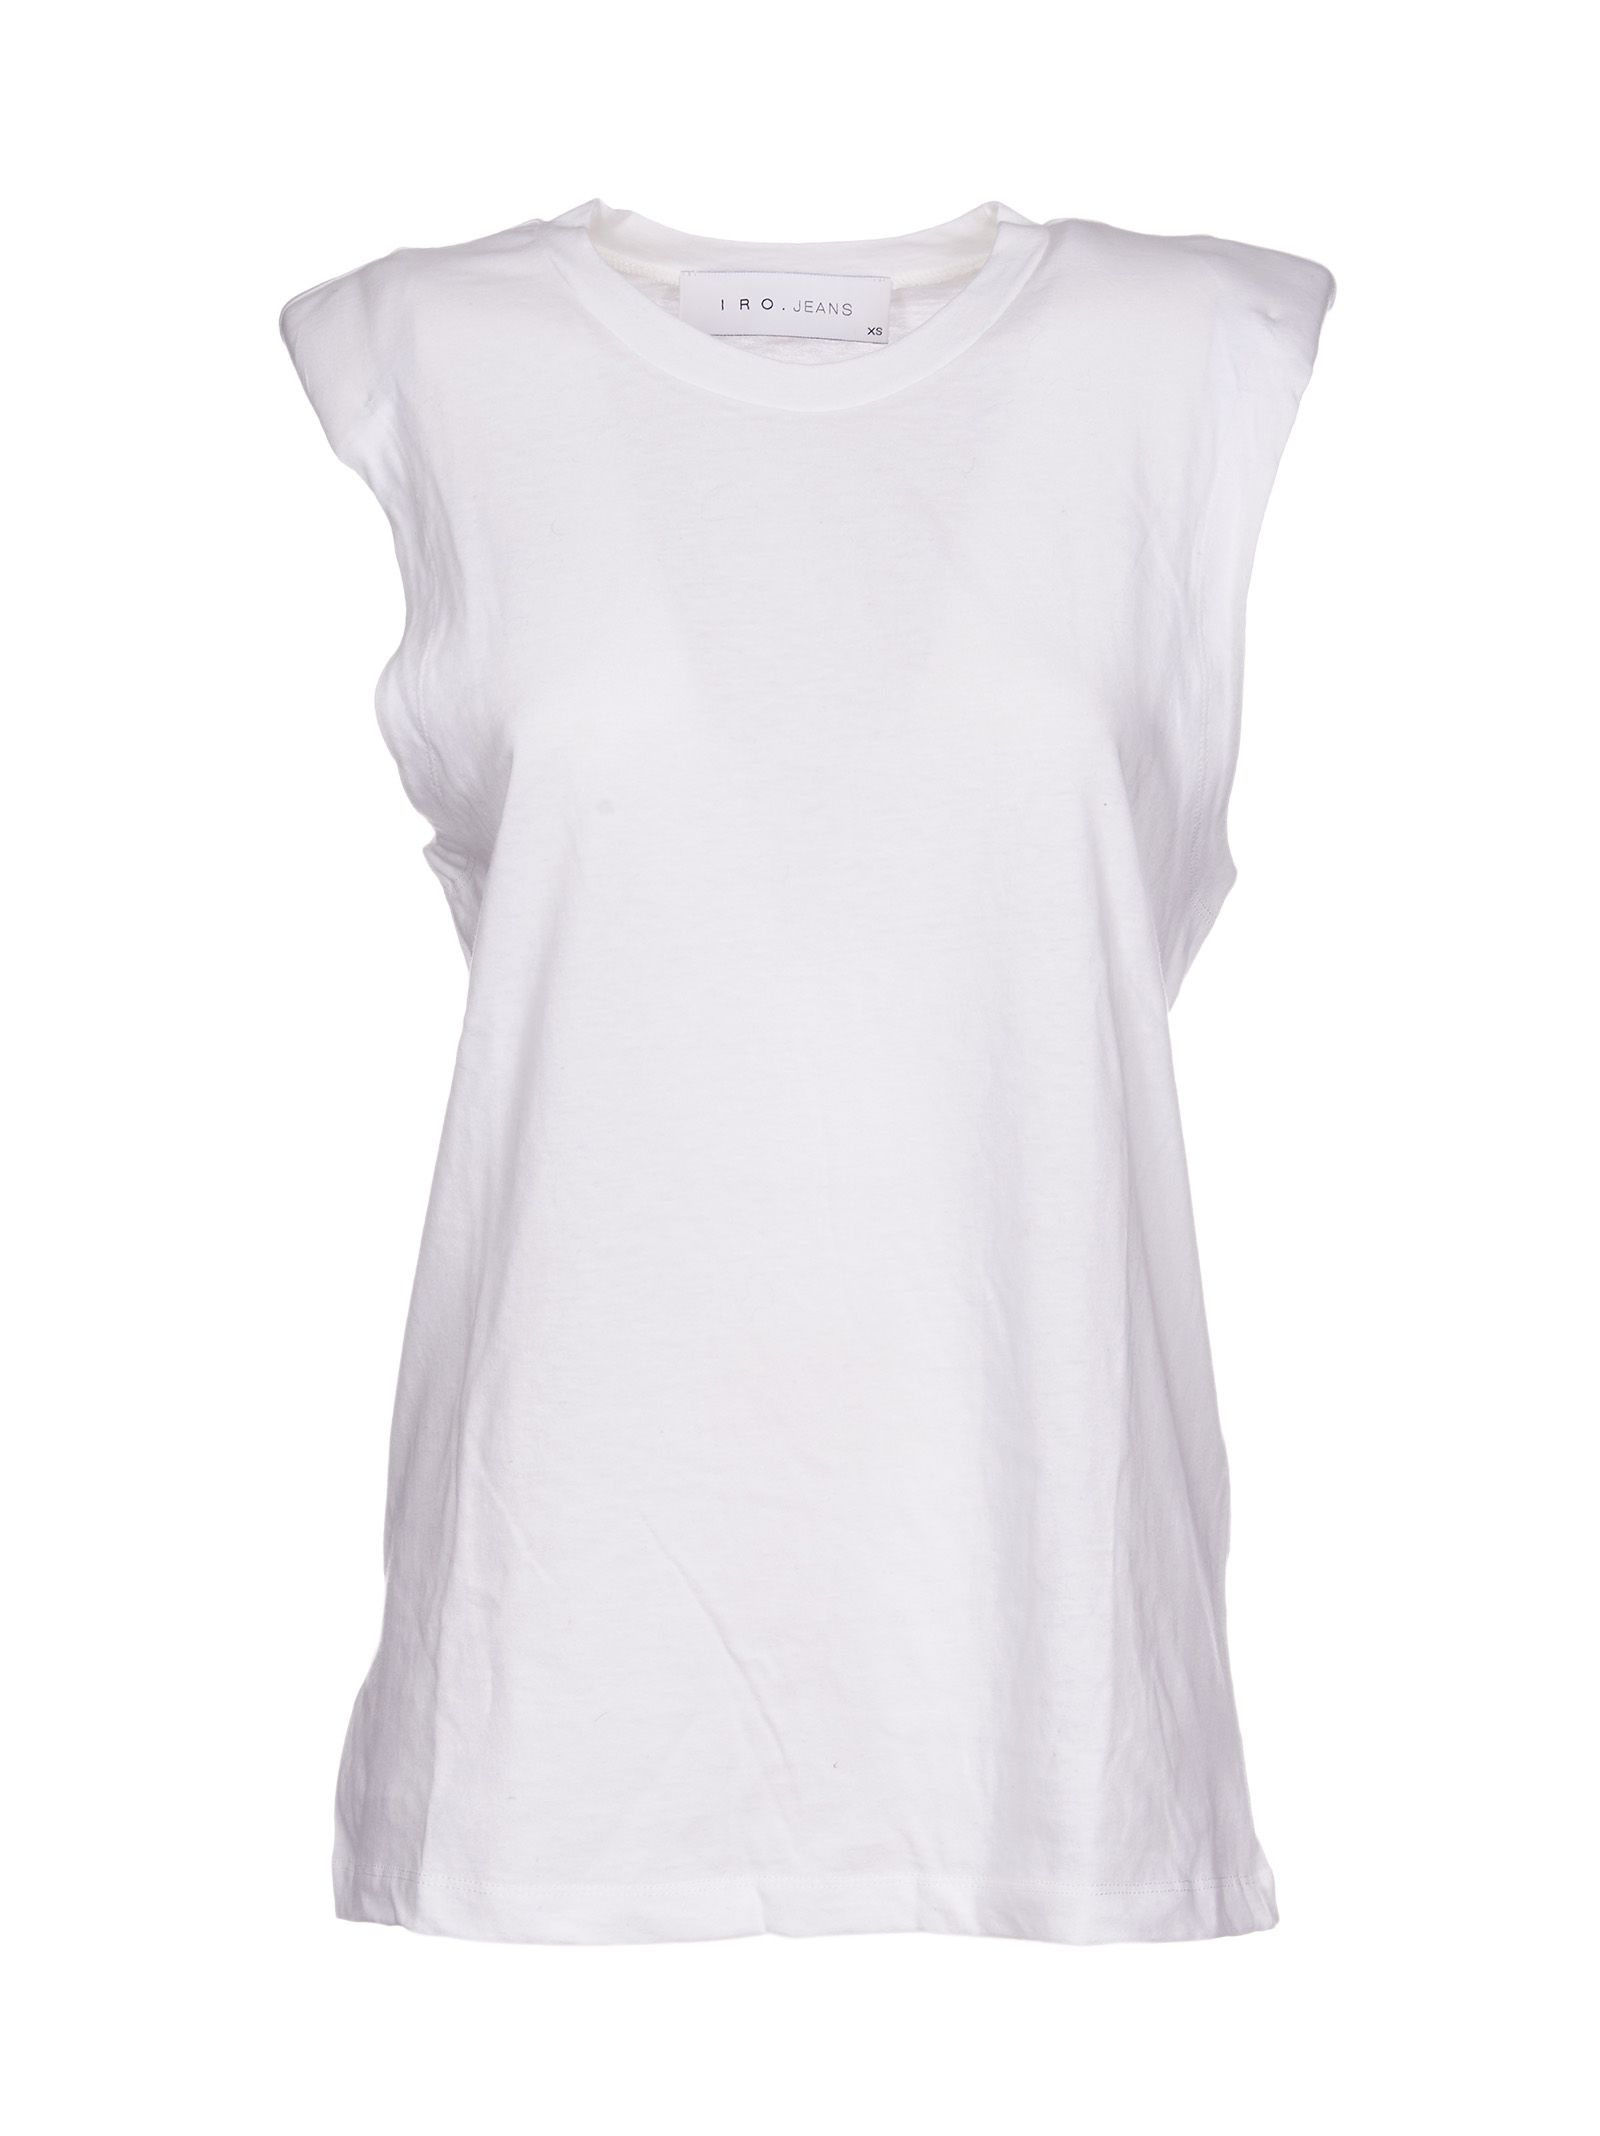 For Sale Sale Online Iro crew-neck tank - White Discount Top Quality Outlet Amazing Price Cheap Browse sPTyv7